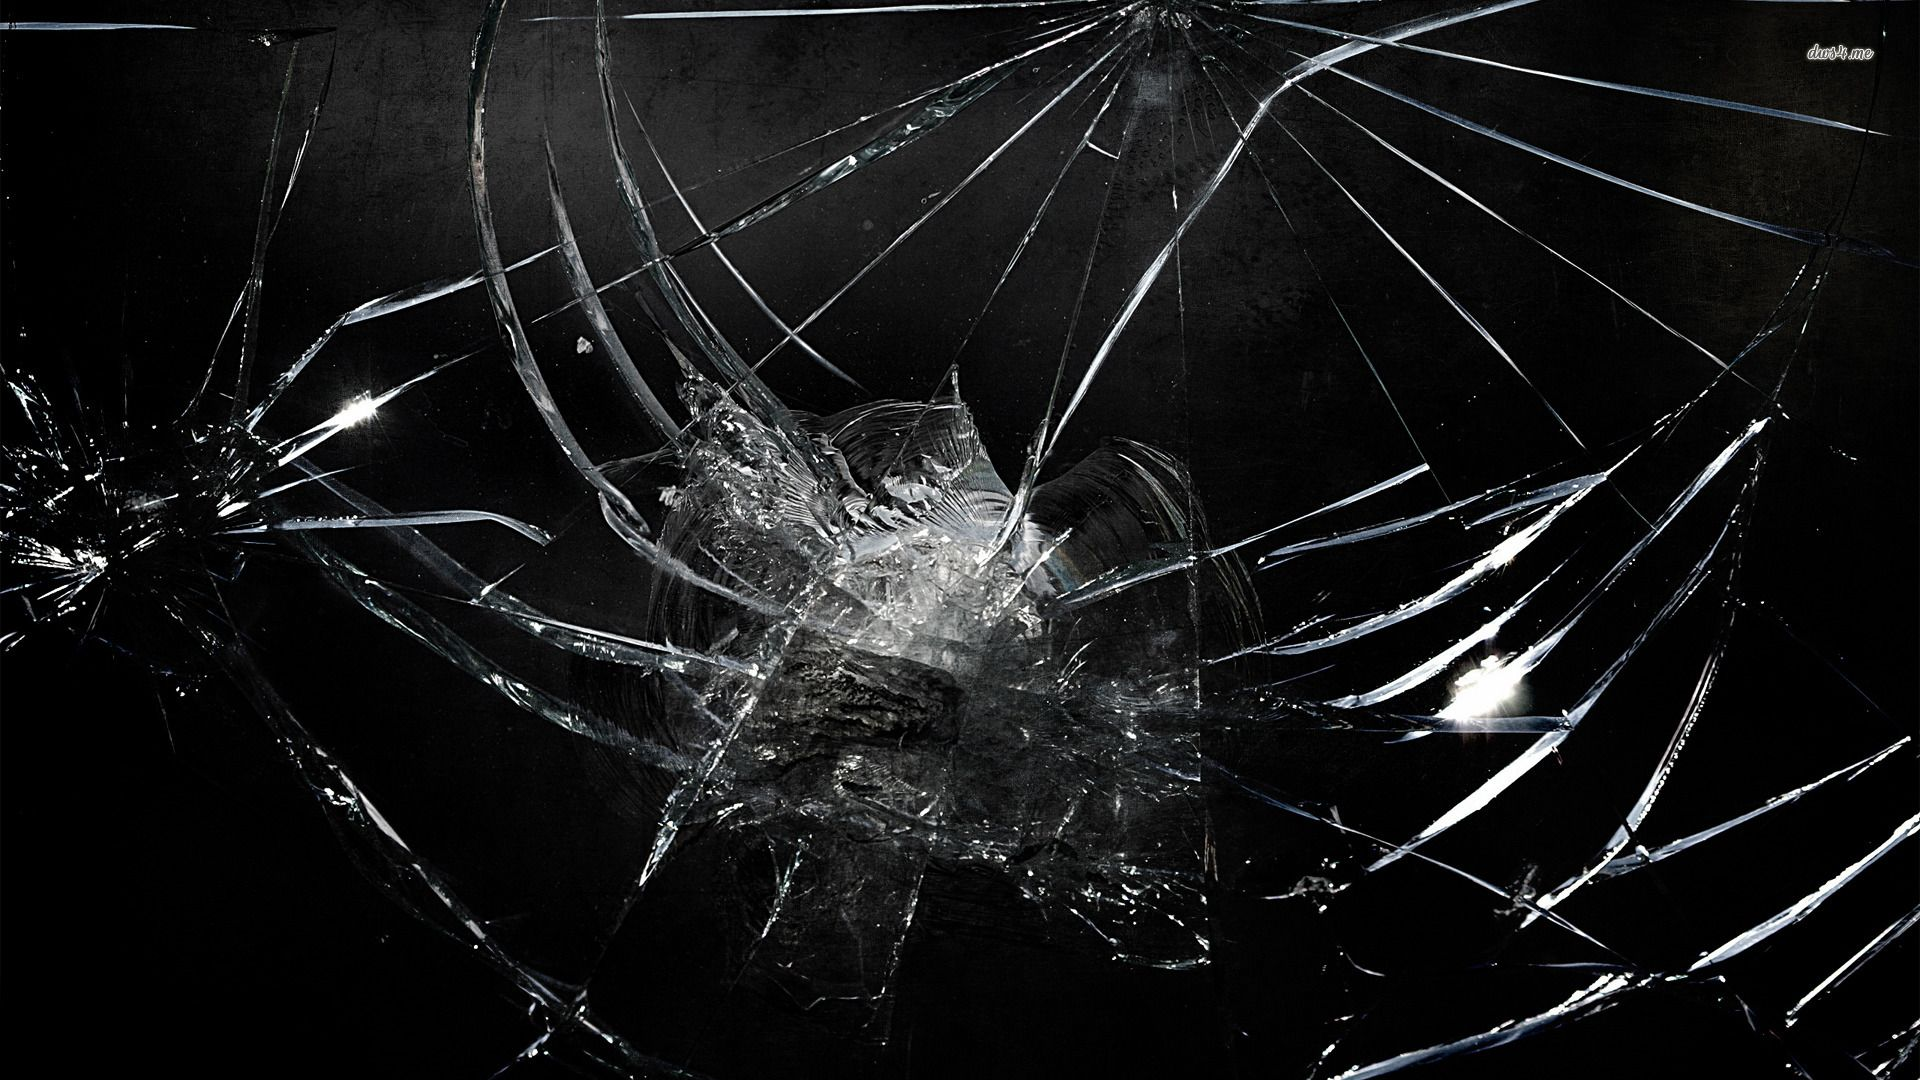 Pictures shattered glass backgrounds - Google Search ...